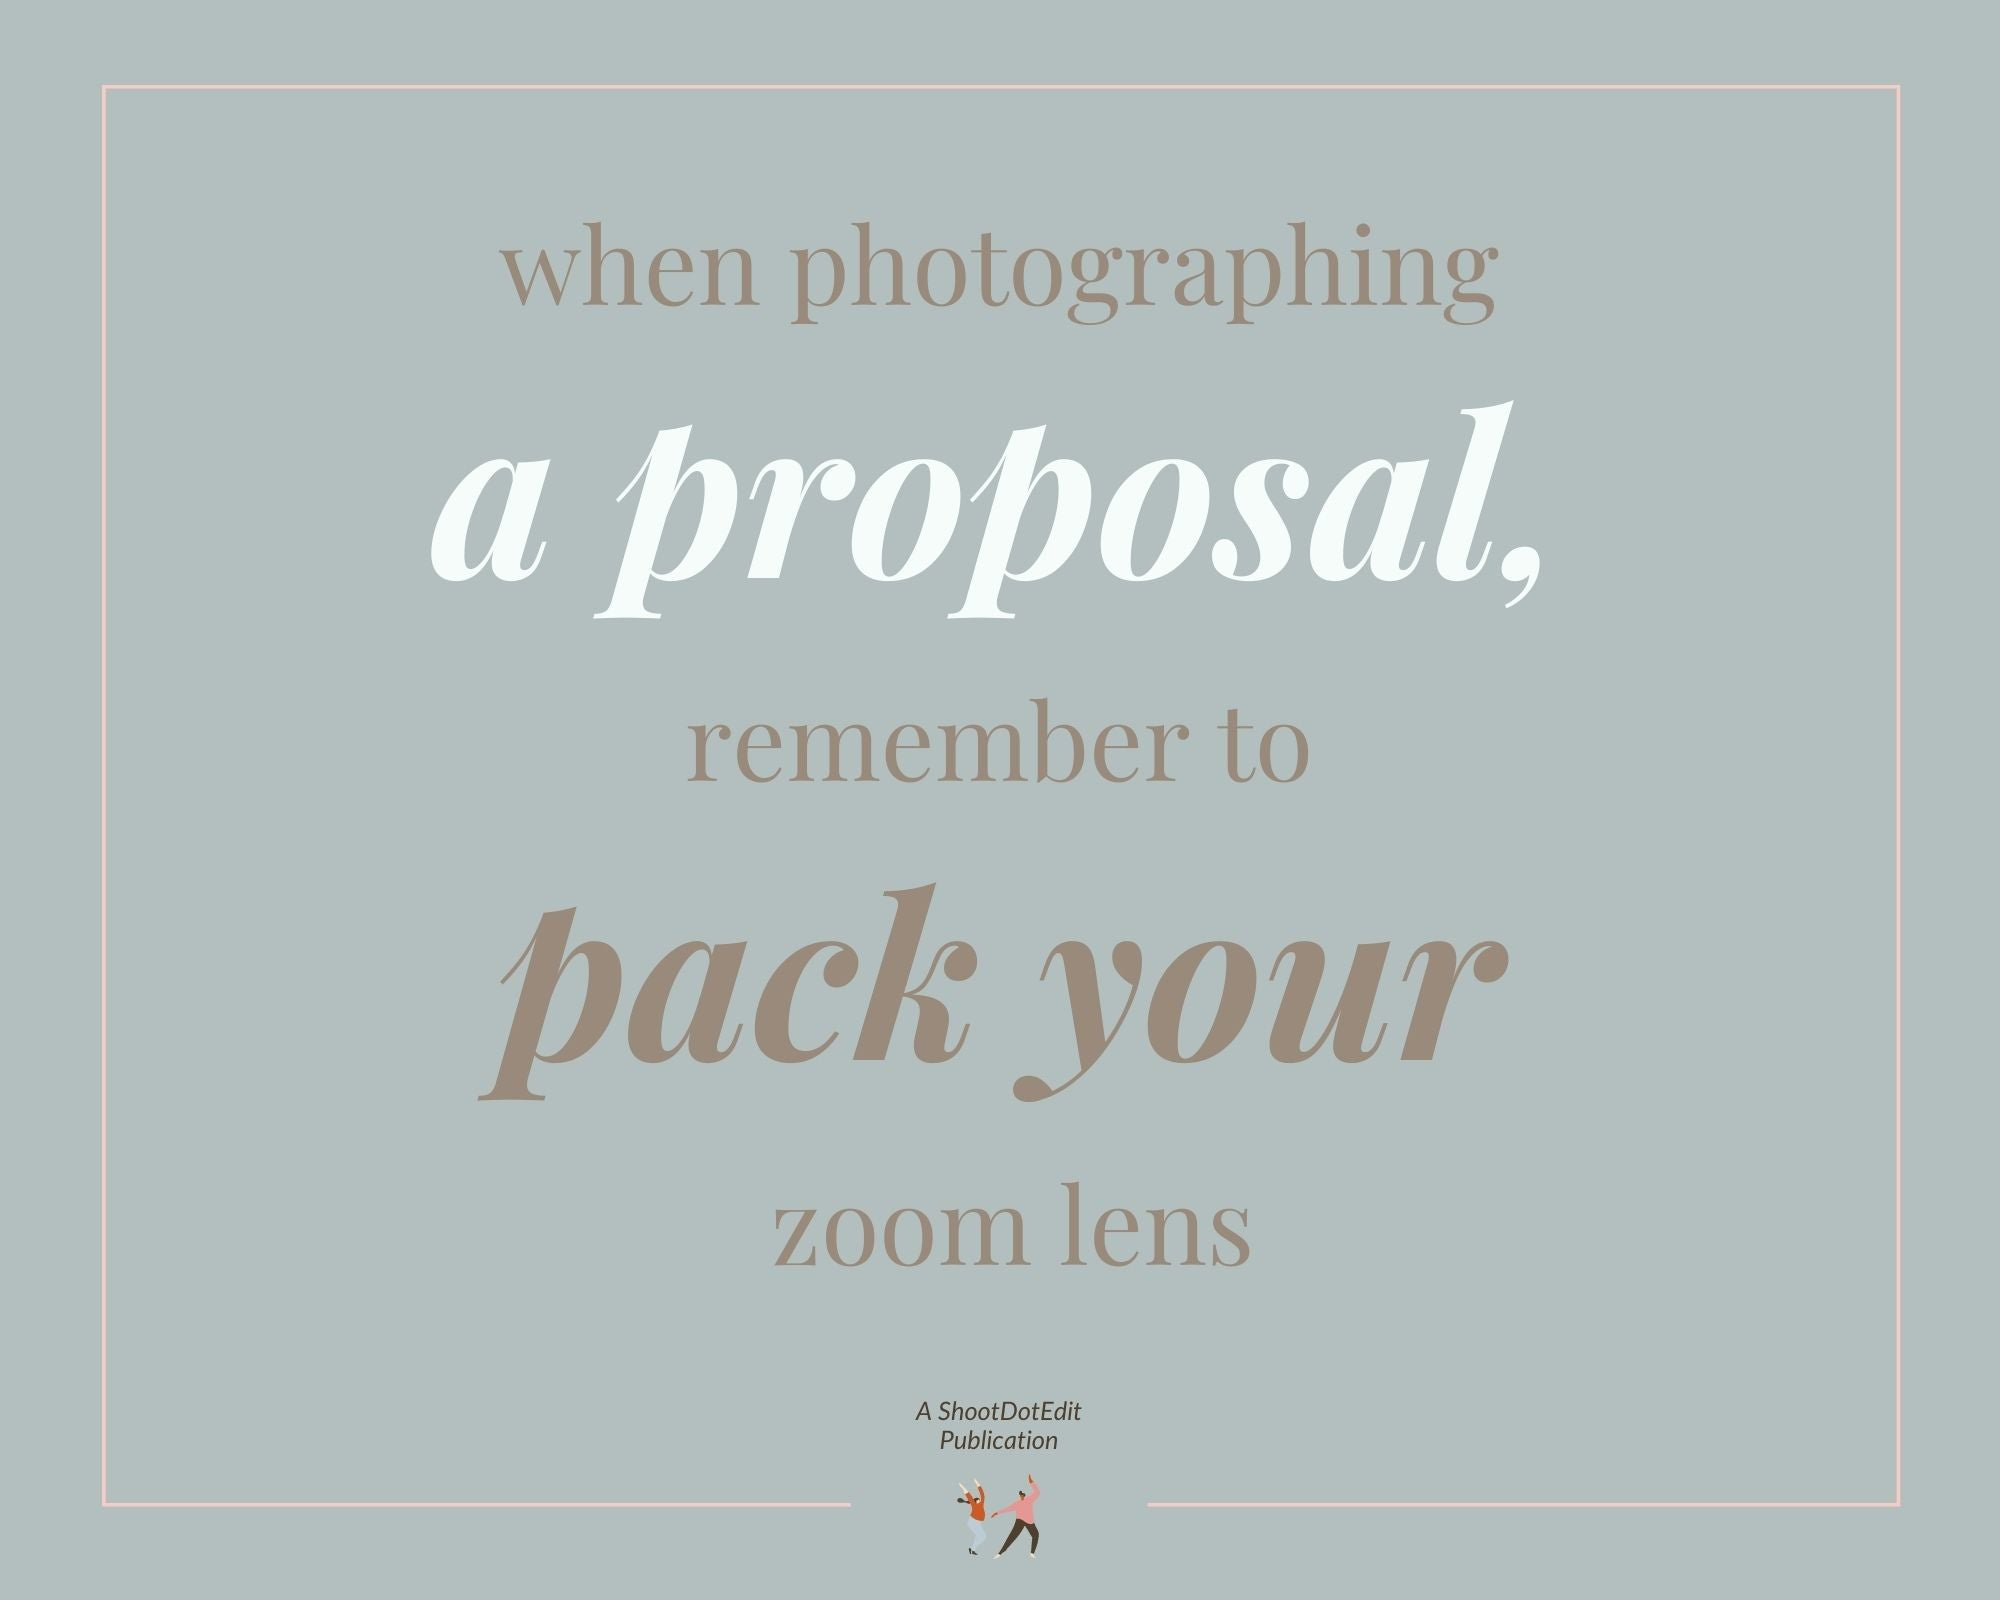 Infographic stating when photographing a proposal remember to pack your zoom less